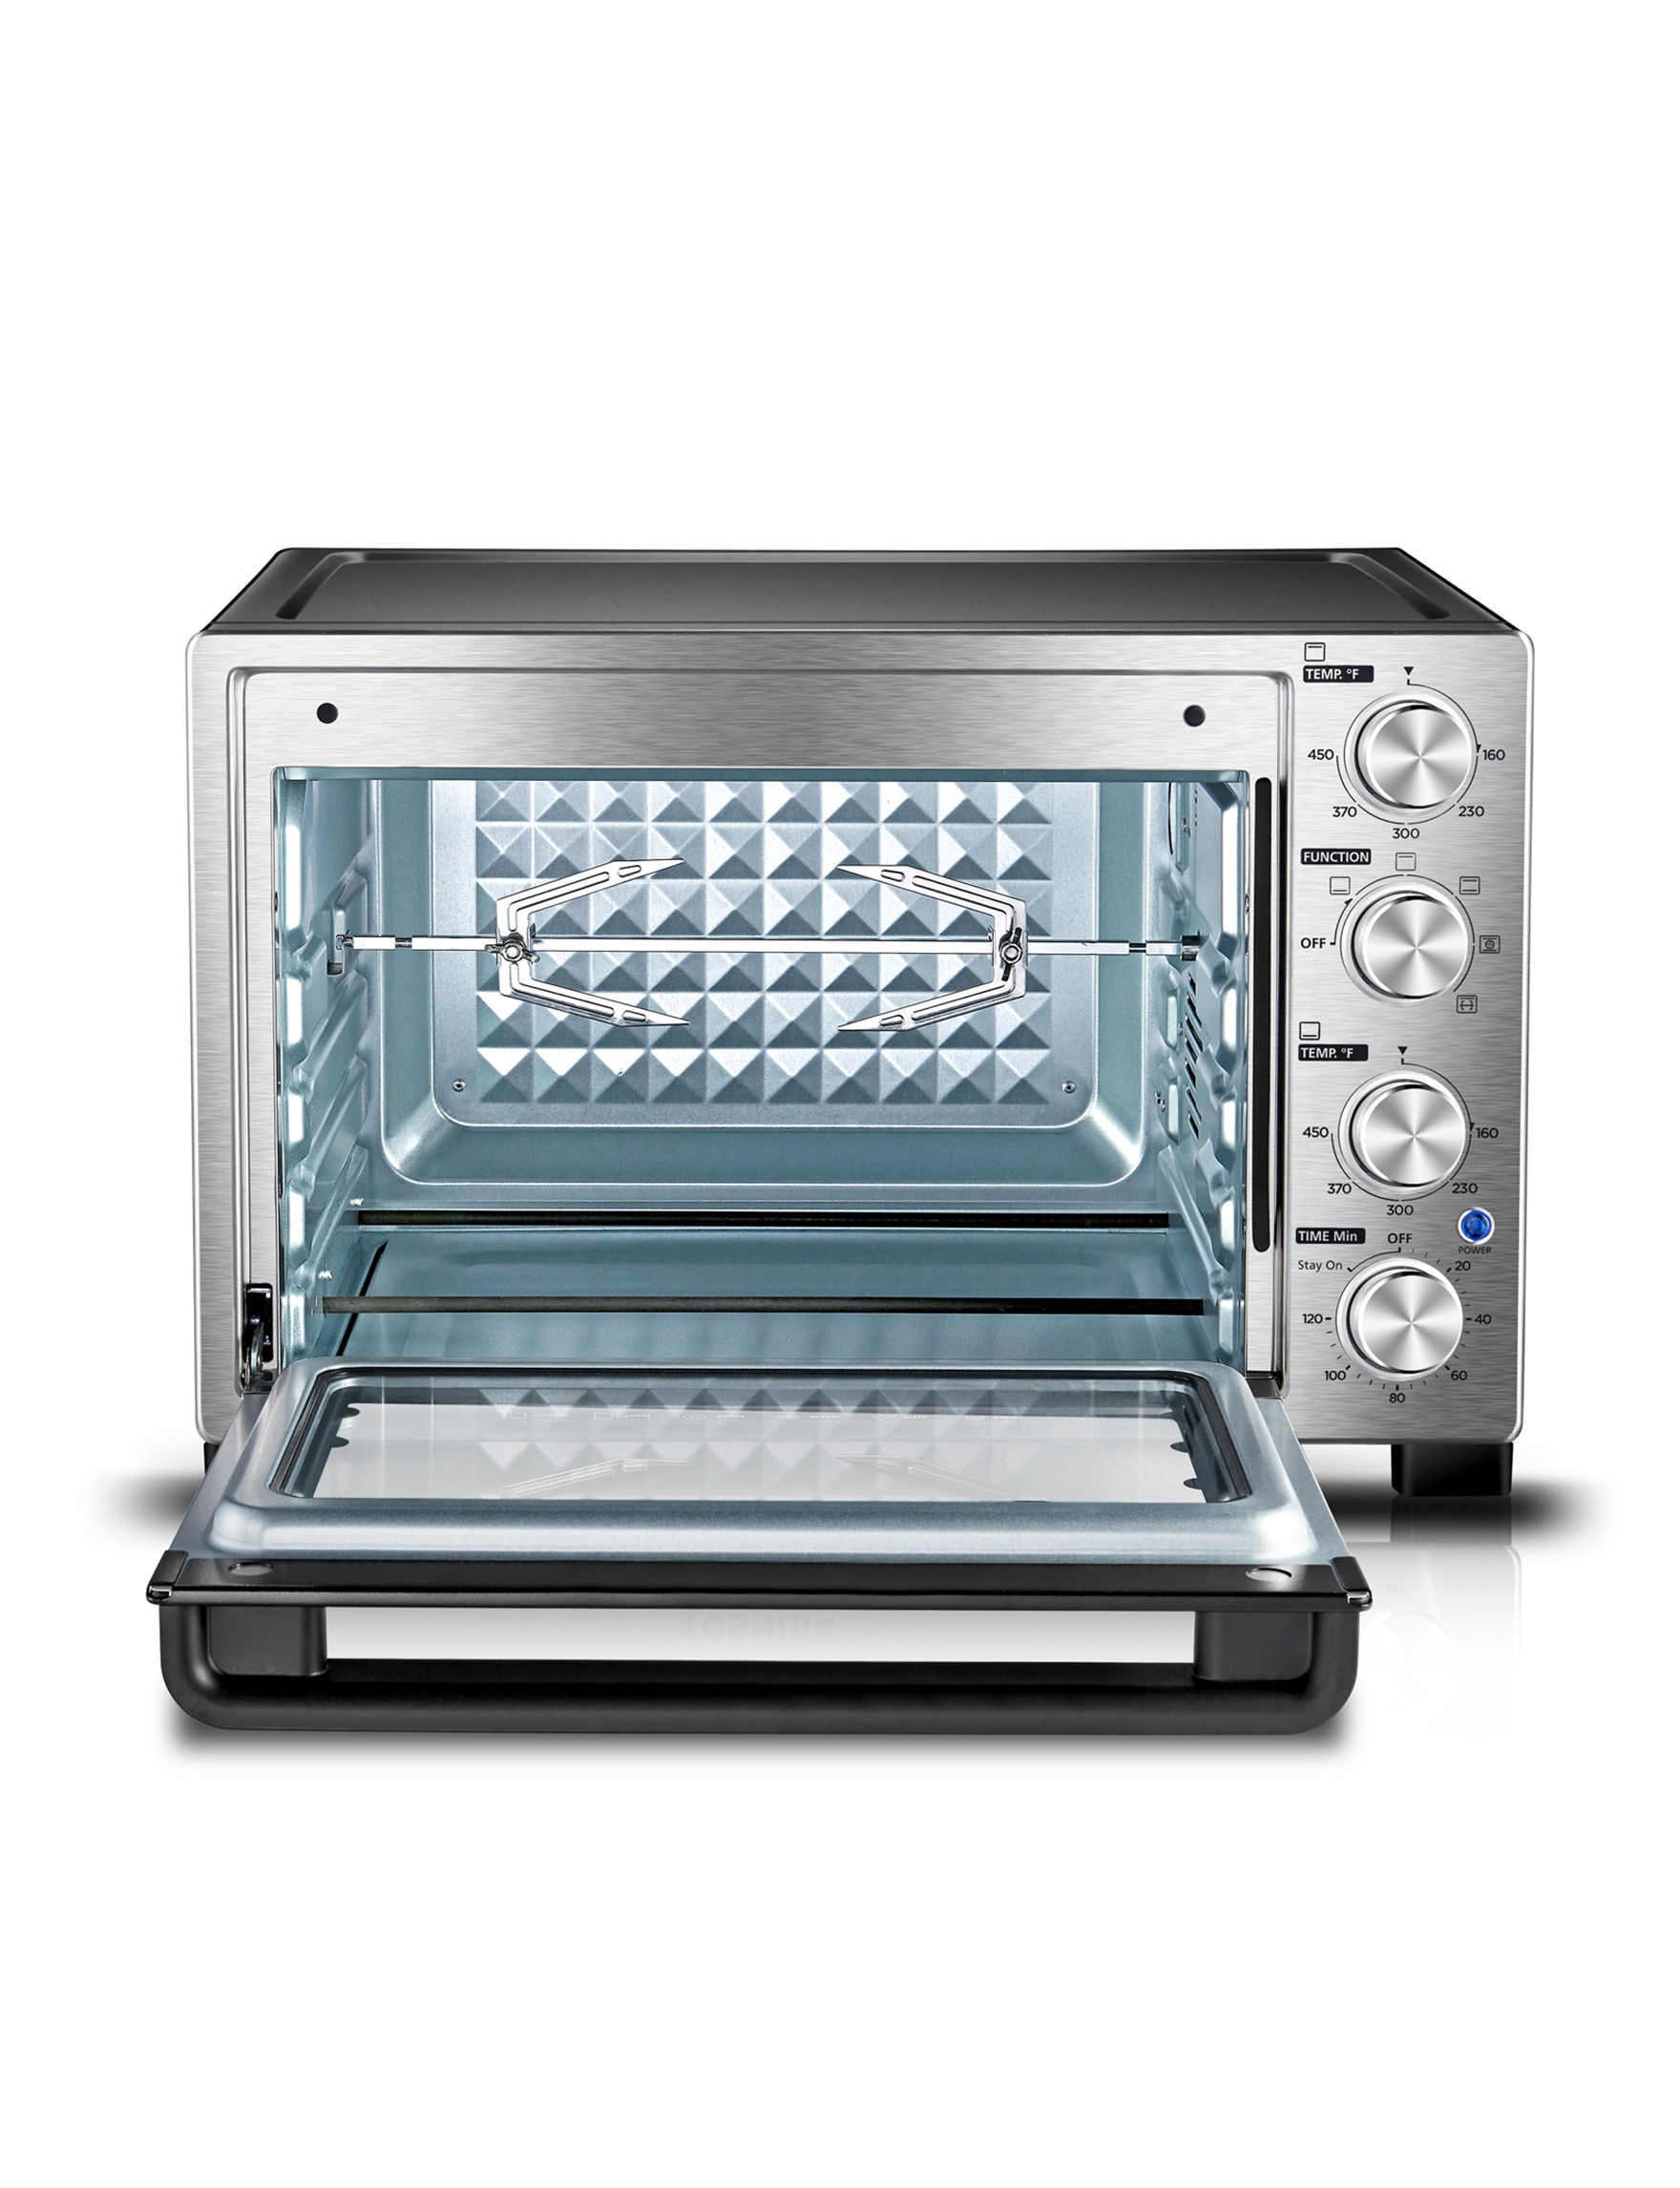 Toshiba Stainless Steel Convection Toaster Oven - Silver - Toshiba